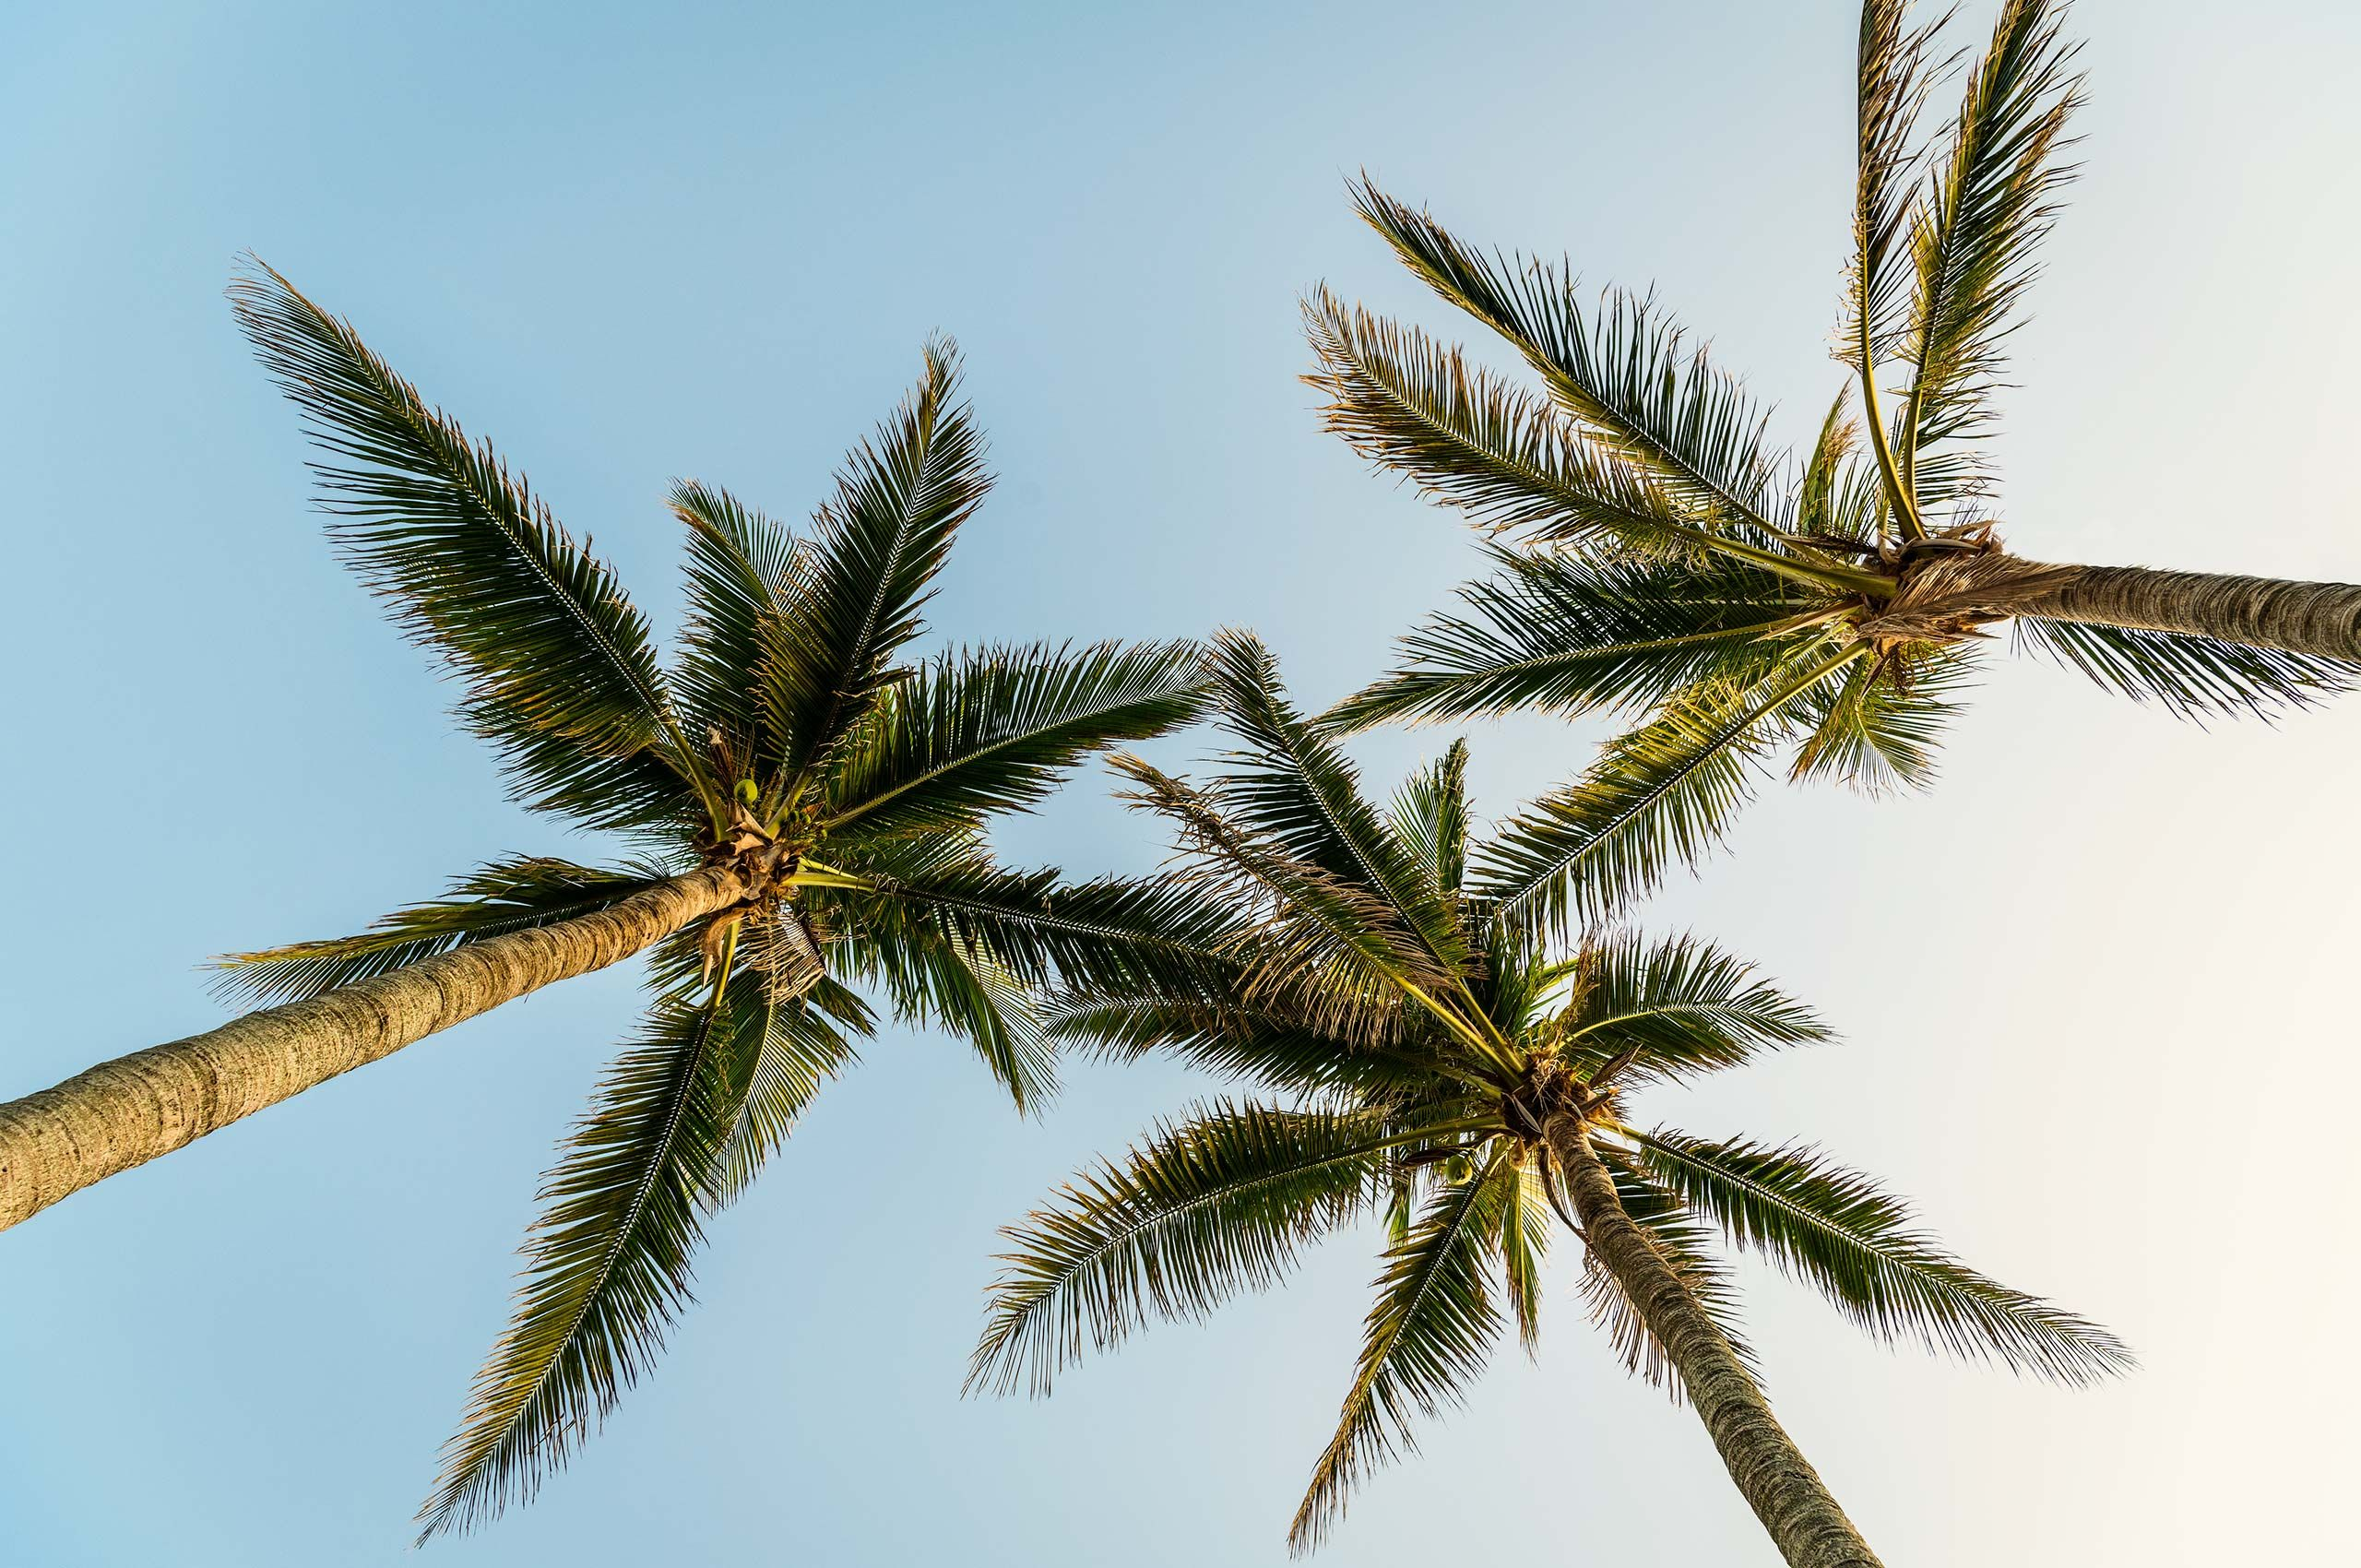 Palmtrees-against-sky-HenrikOlundPhotography.jpg